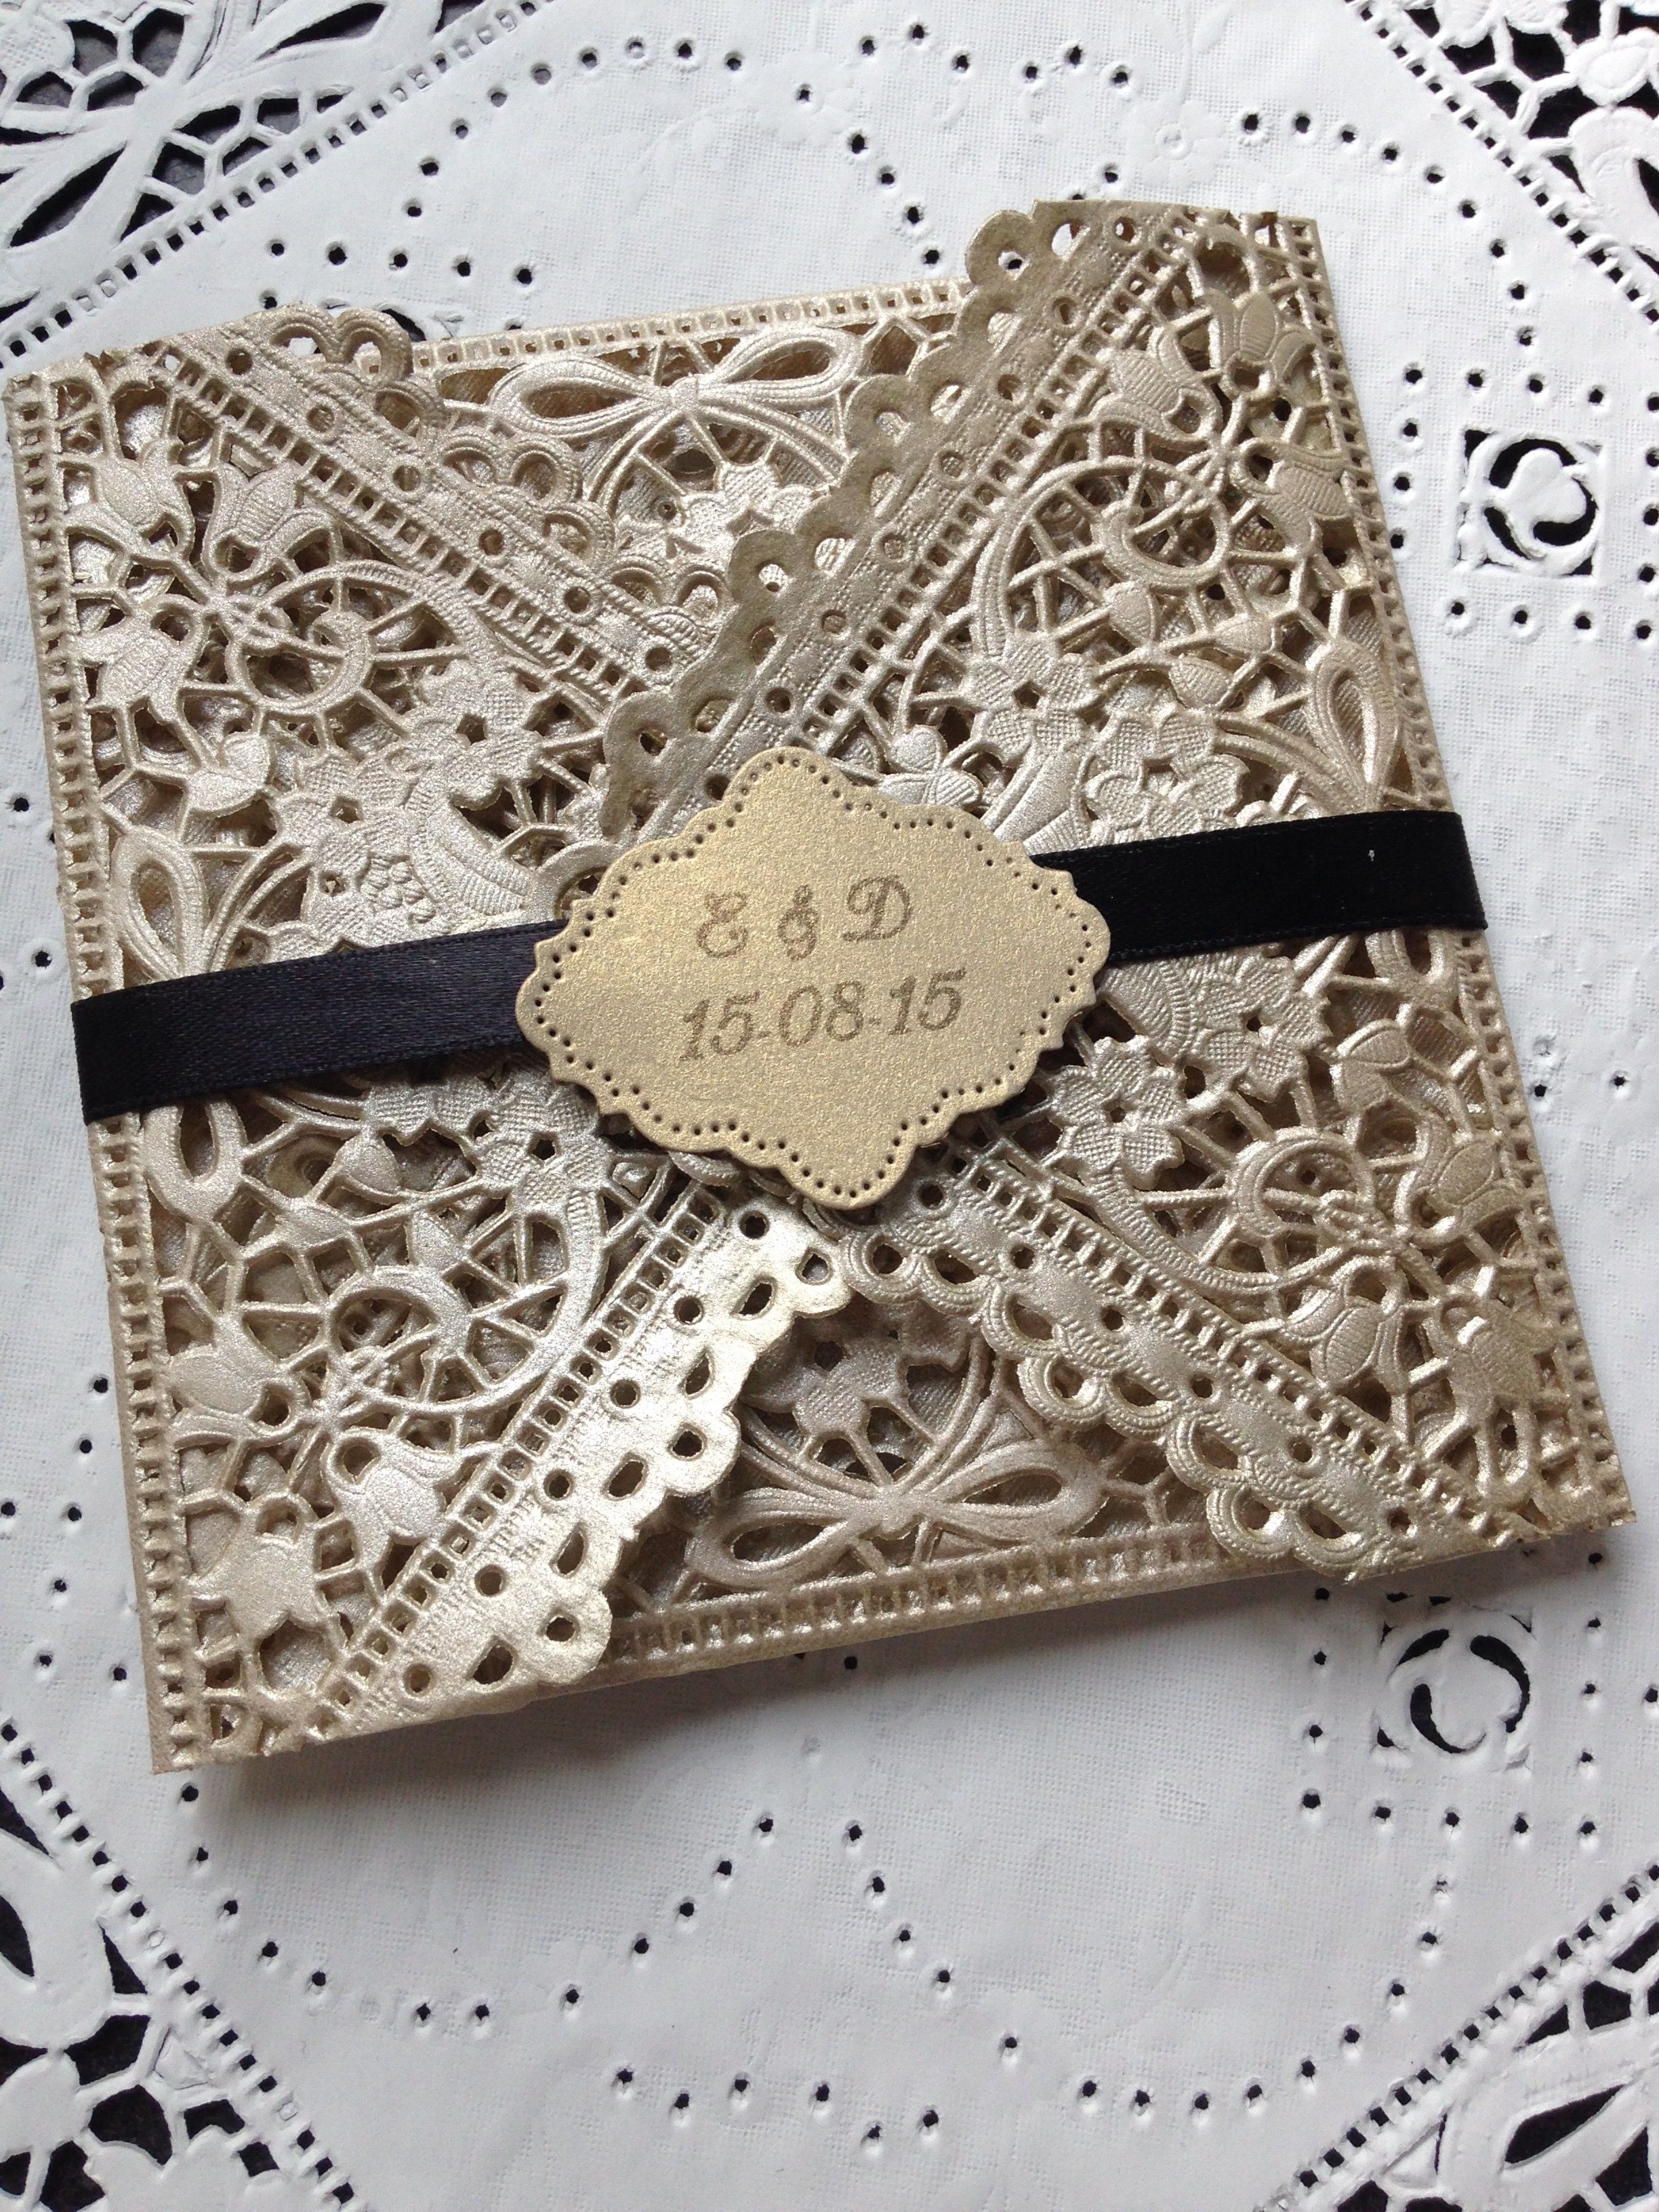 Personalised hand made doily wedding invitation in Gold & Black with ...